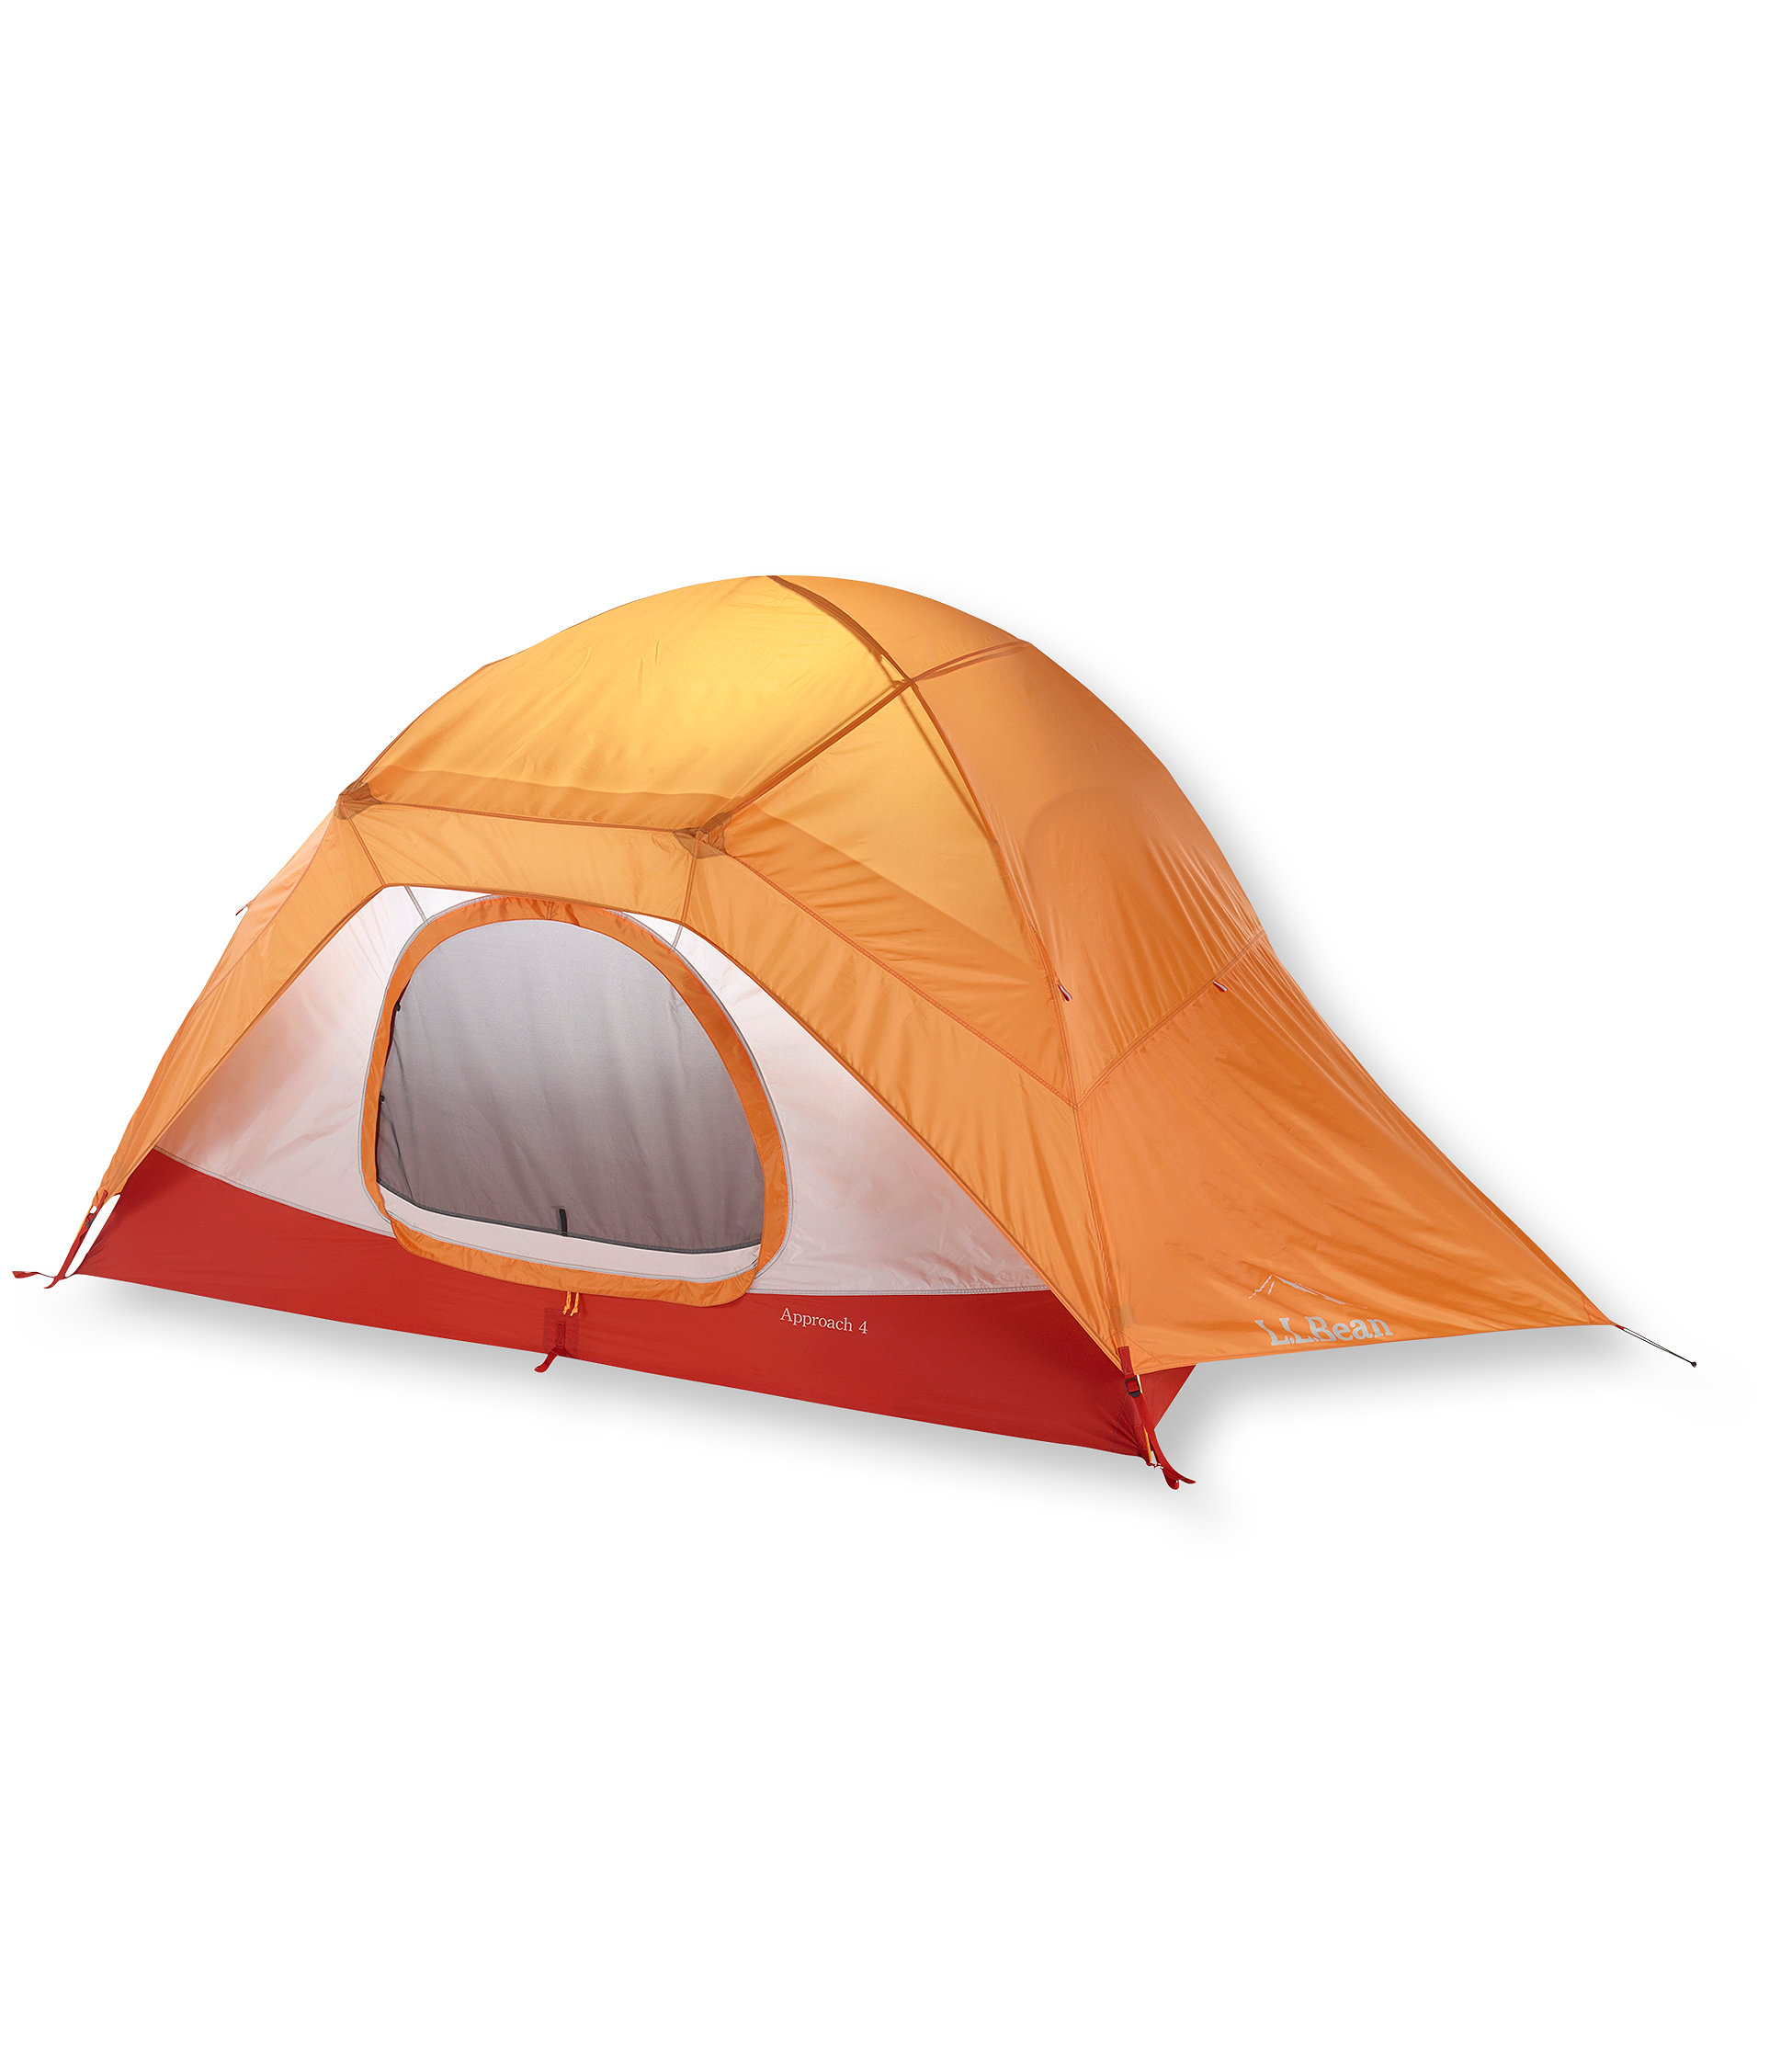 L.L.Bean Approach 4-Person Tent